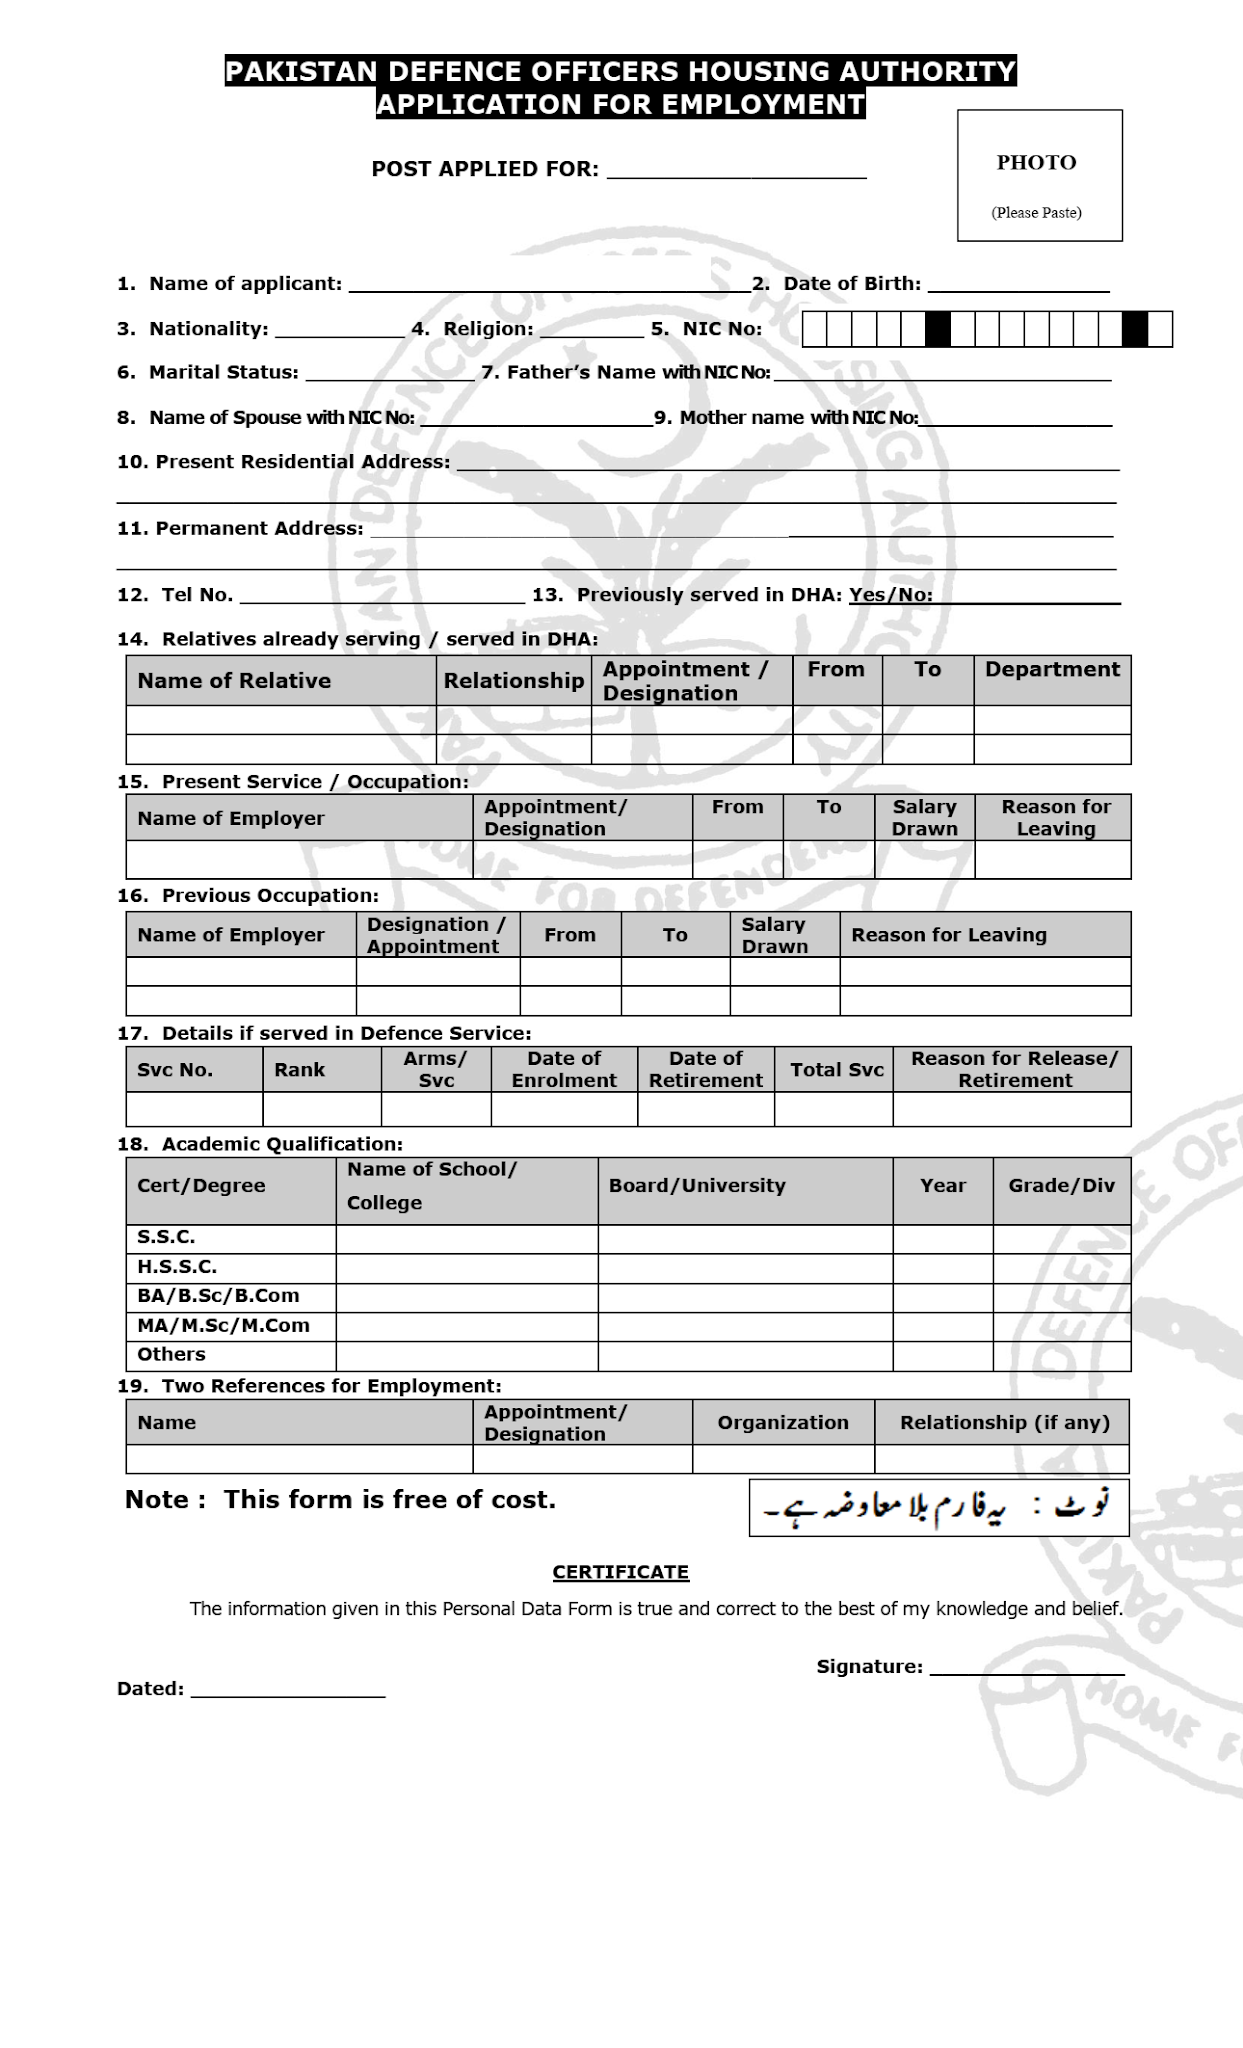 Download Application Form of Defence Housing Authority DHA Karachi Jobs 2021 for Field Inspector, Office Superintendent, Office Assistant, Telephone Operator, UDC, DEO, LDC and more